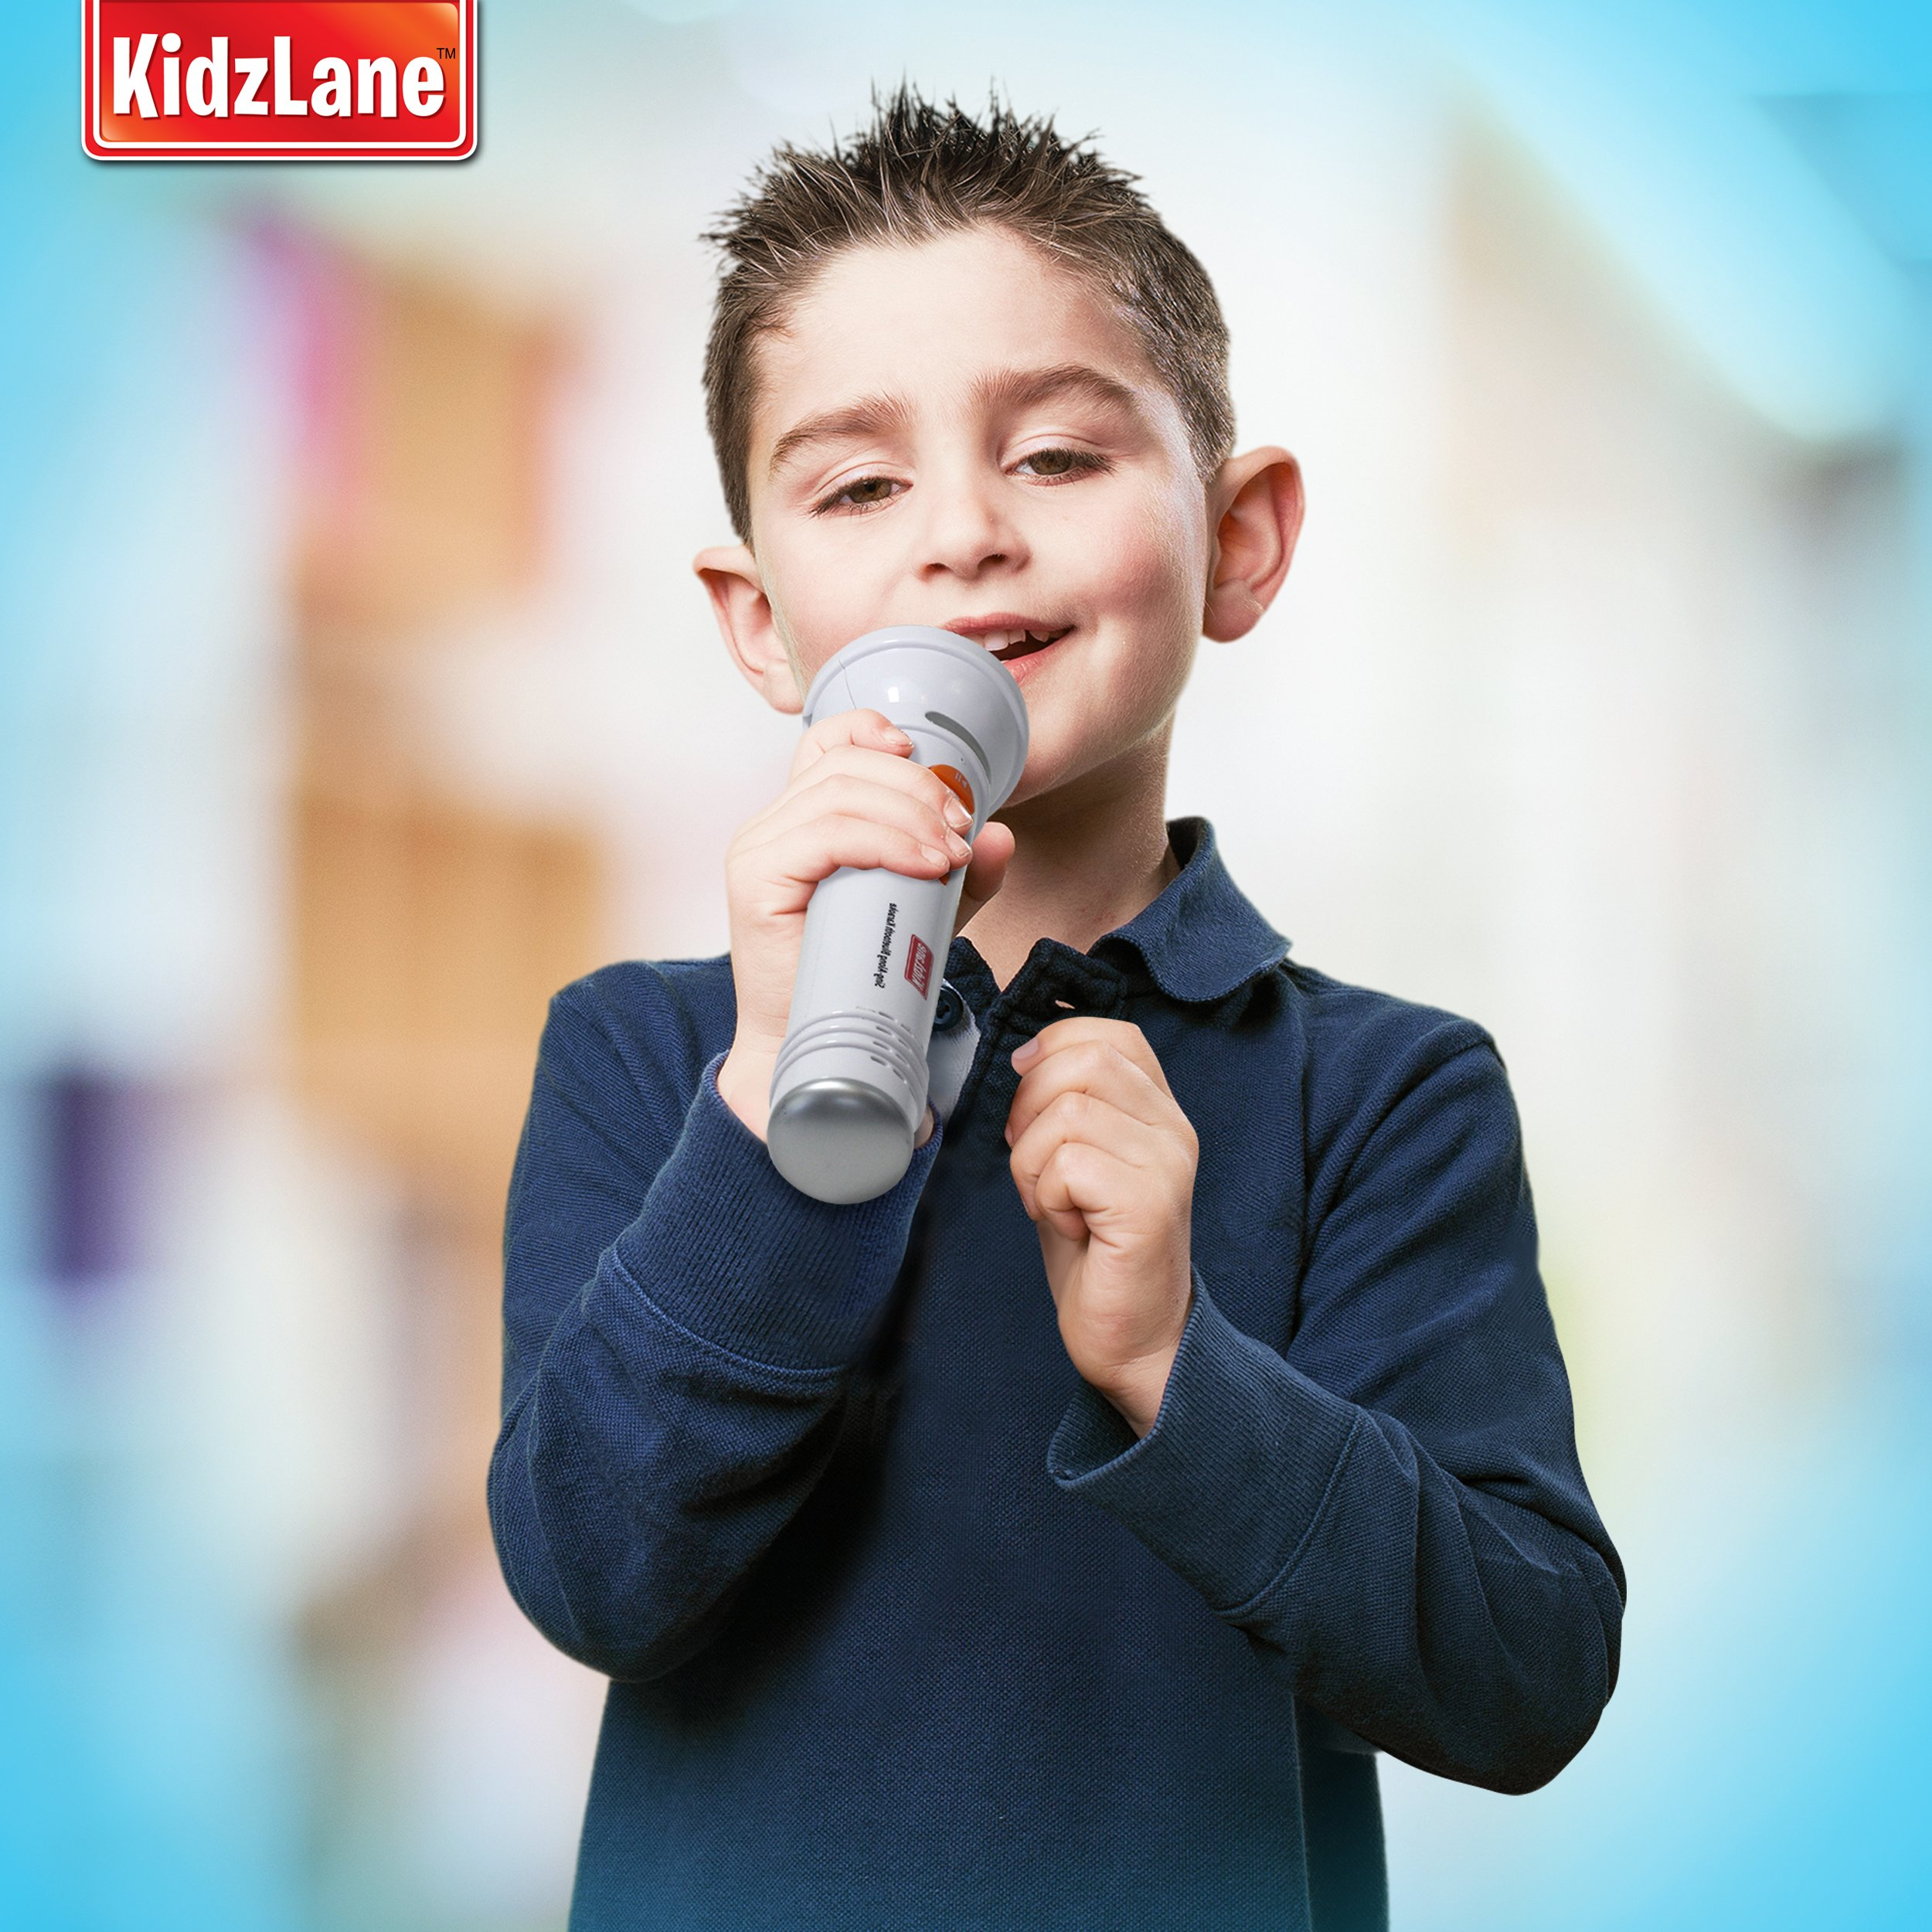 Kidzlane Microphone for Kids - Karaoke Machine Sing-A-Long Music Player with Built in Speakers, Preprogrammed Music and Wireless Connnectivity by Kidzlane (Image #4)